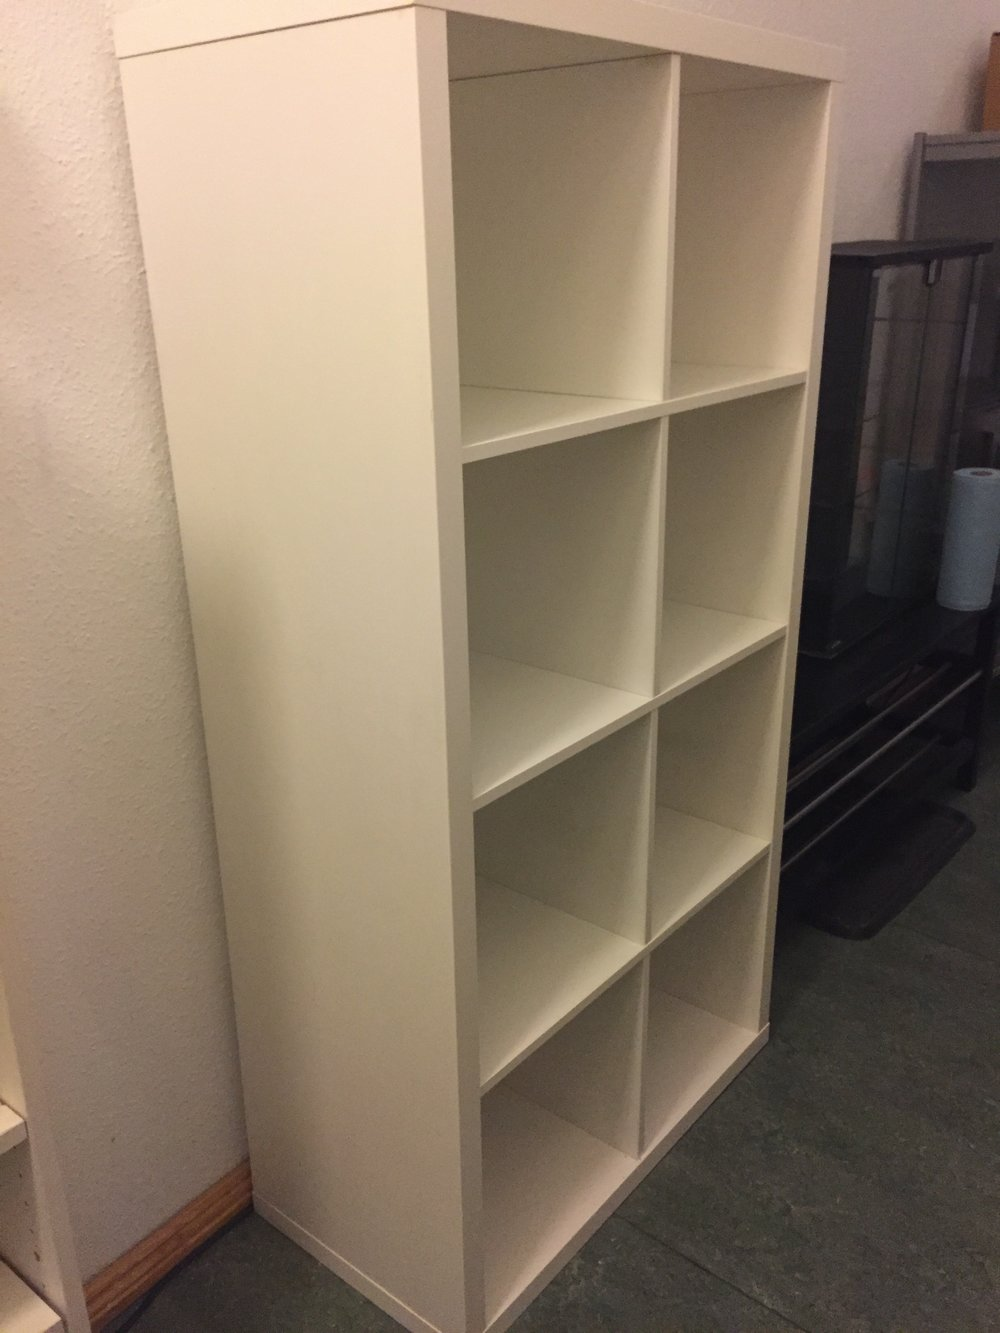 SOLD - Ikea Kallax 2x2 cubby. White. Classic. 77 x 147 x 39 deep. Orientation can be horizontal or vertical. Like New Condition, gently used, clean. All Purpose, great for storage, books, clothing, etc. NP €59, asking €25.